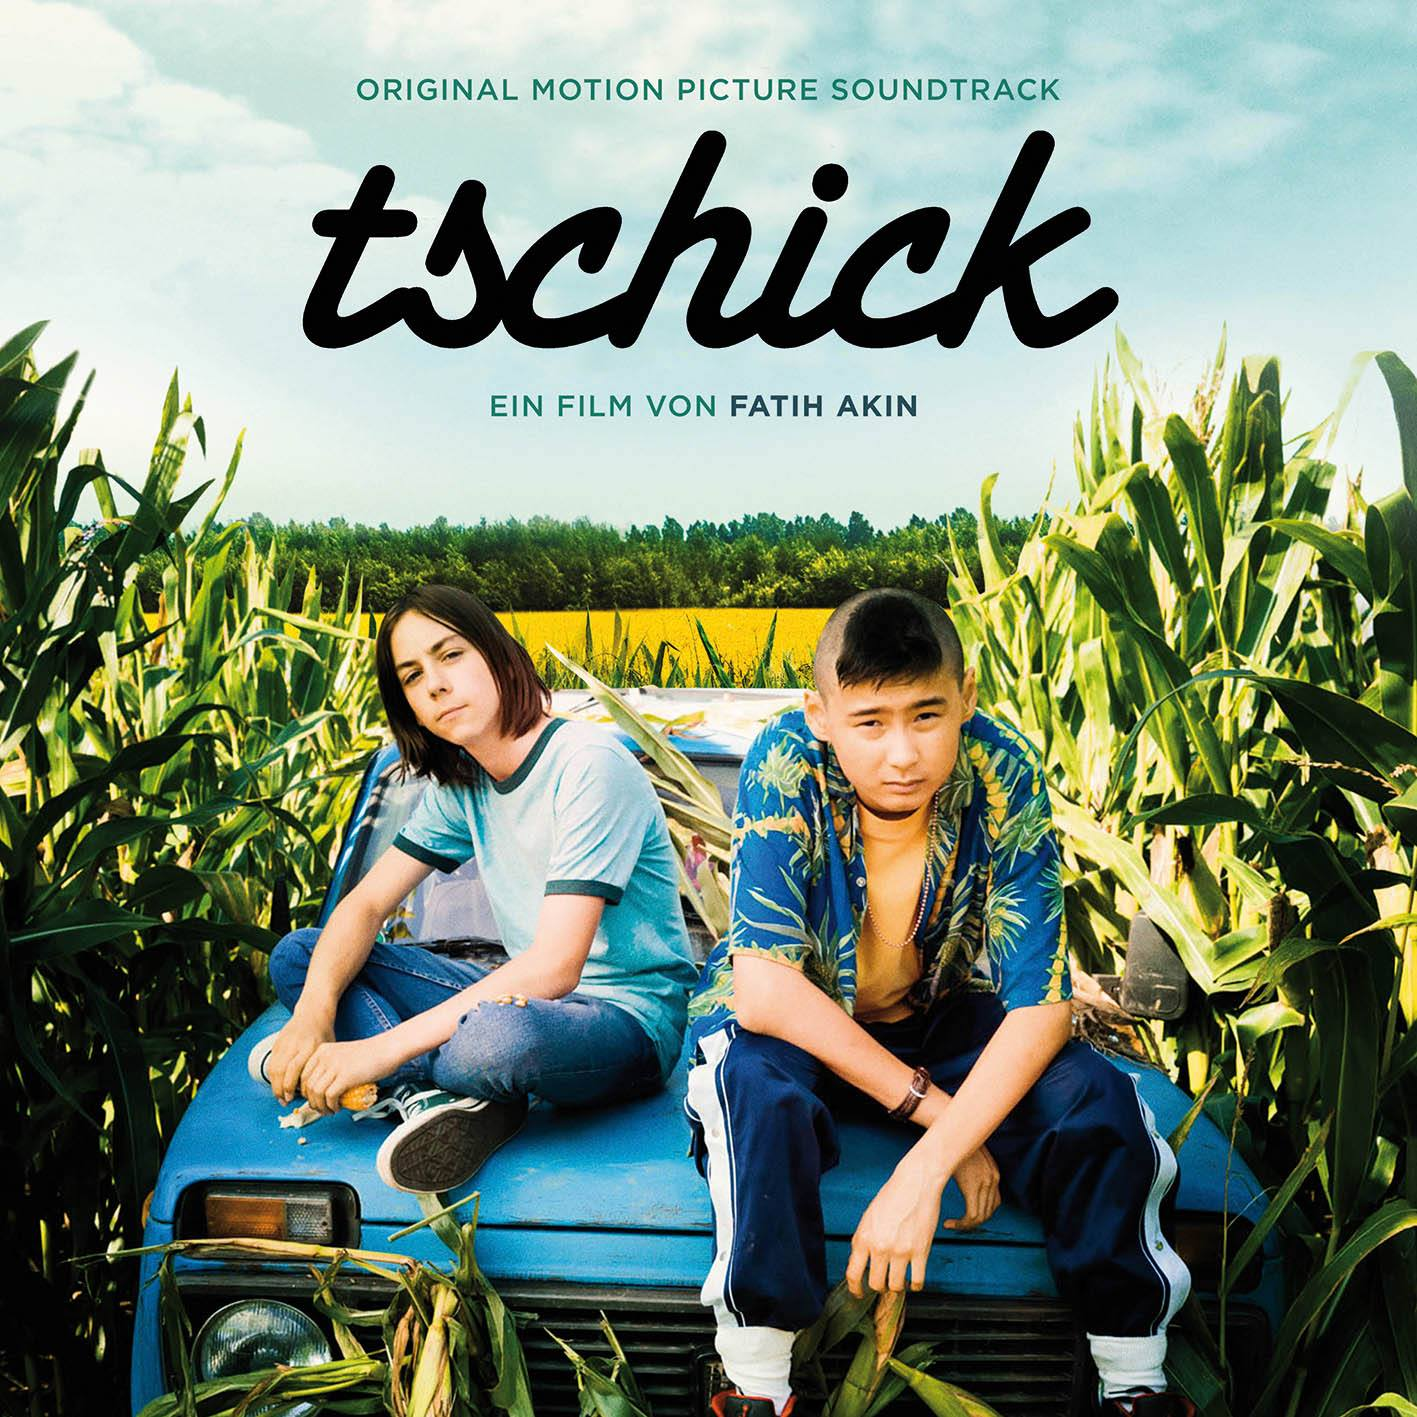 Tschick film review post image